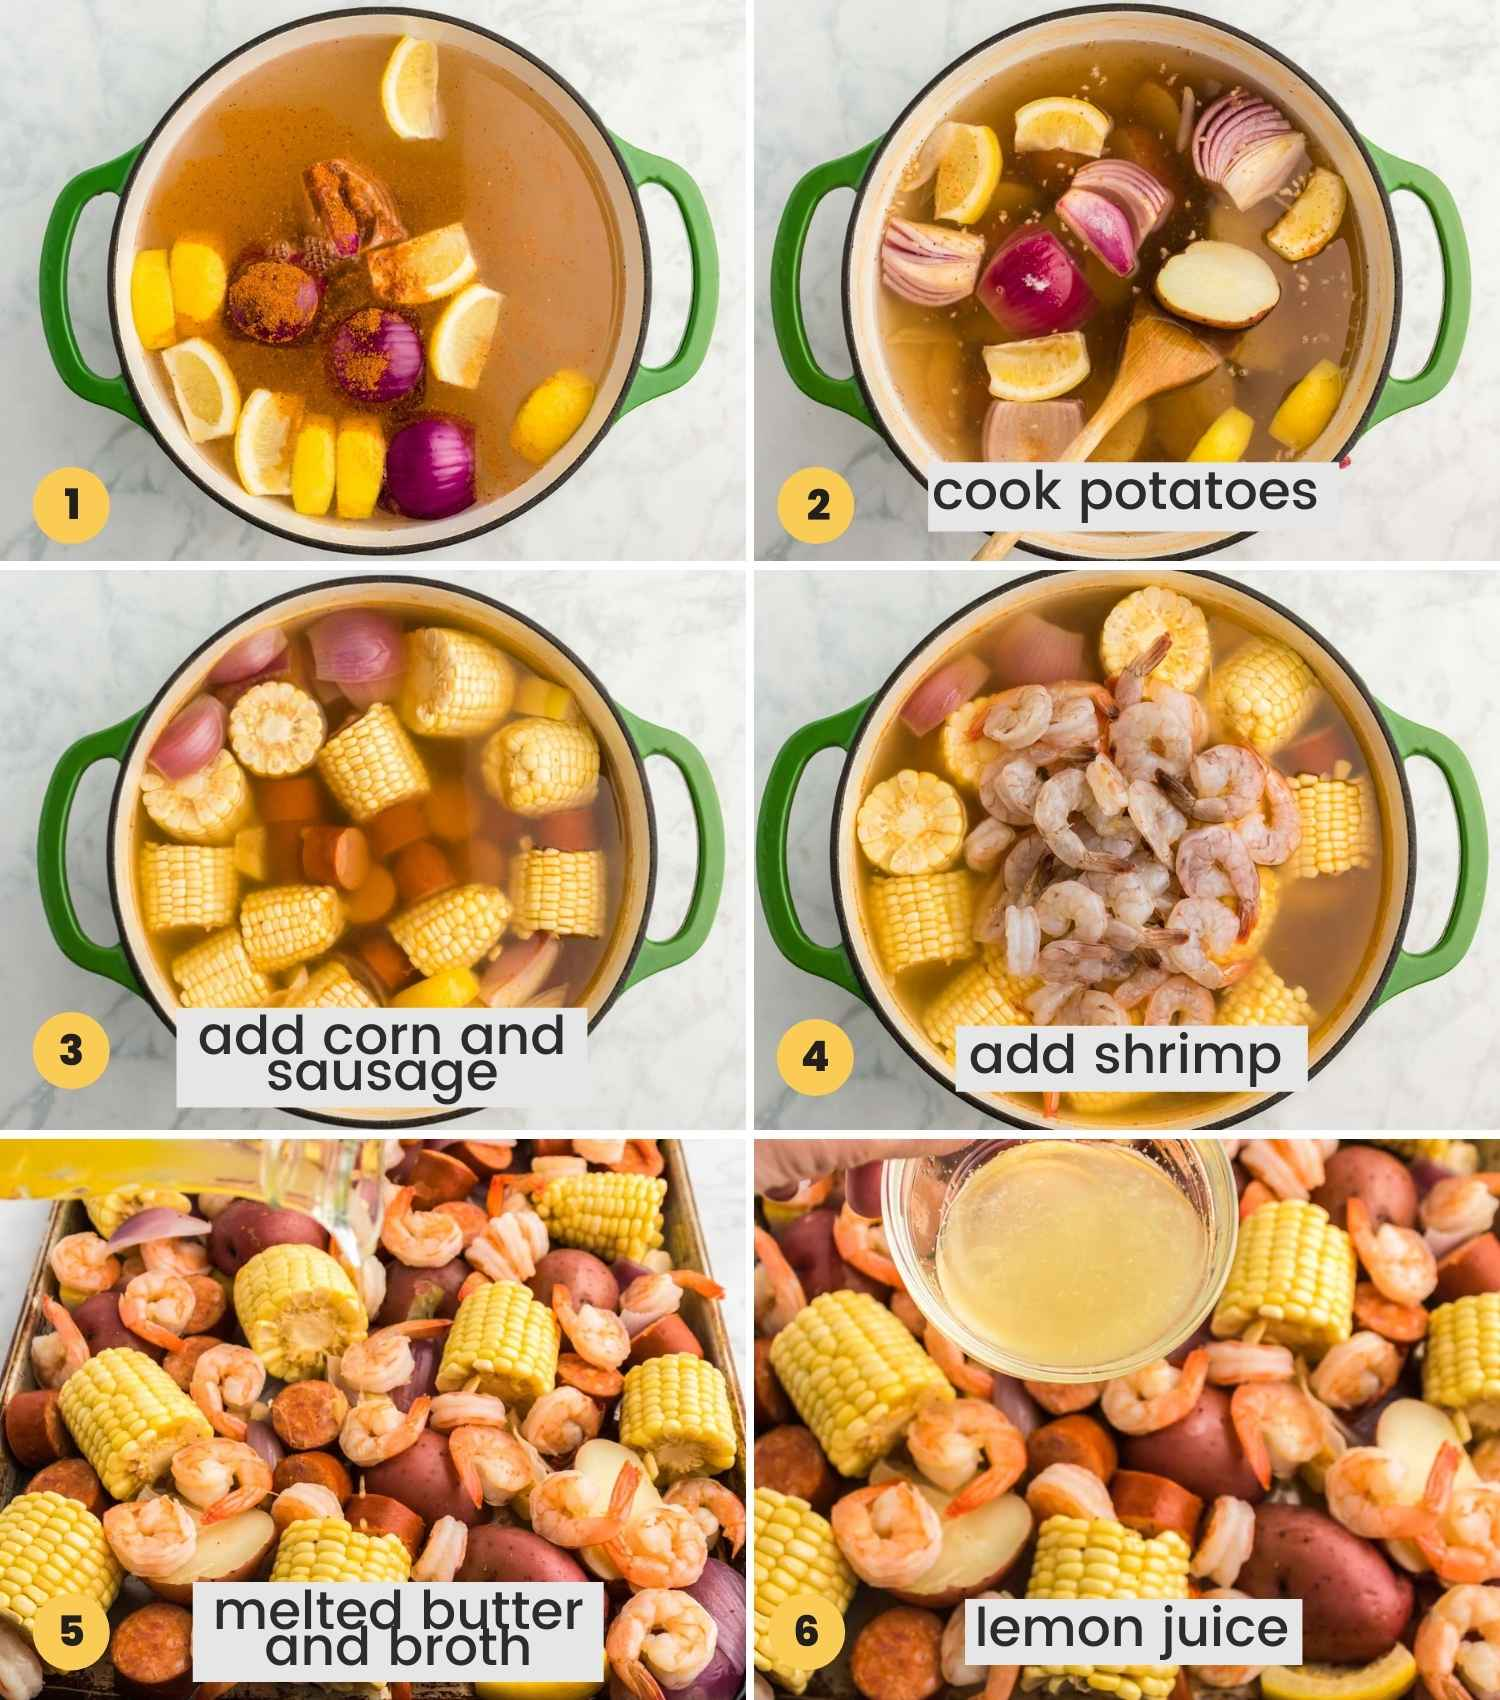 A collage with 6 images showing how to make shrimp boil in a dutch oven and season it with broth, melted butter and lemon juice before serving.